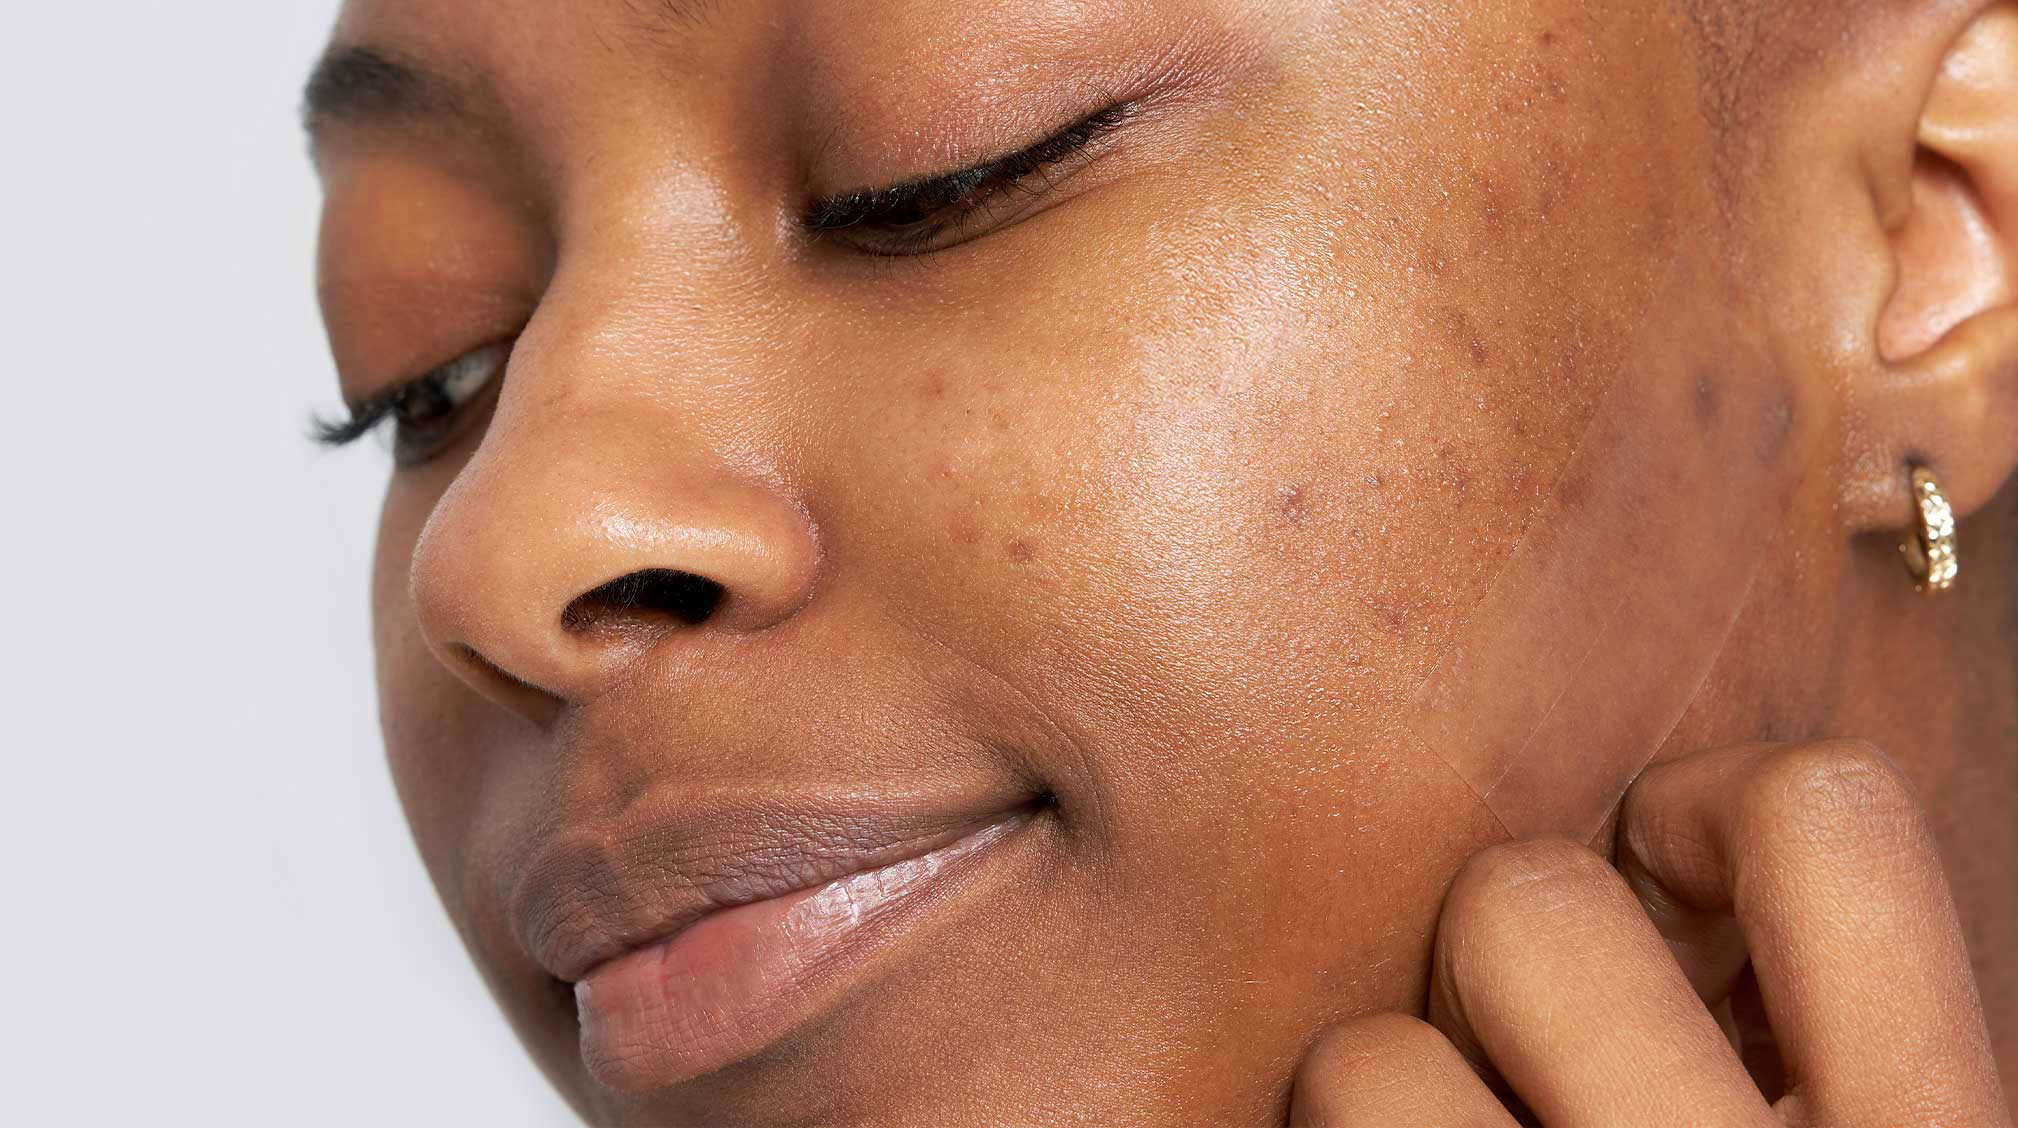 Dark skinned woman showing acne scars and hyperpigmentation on cheek